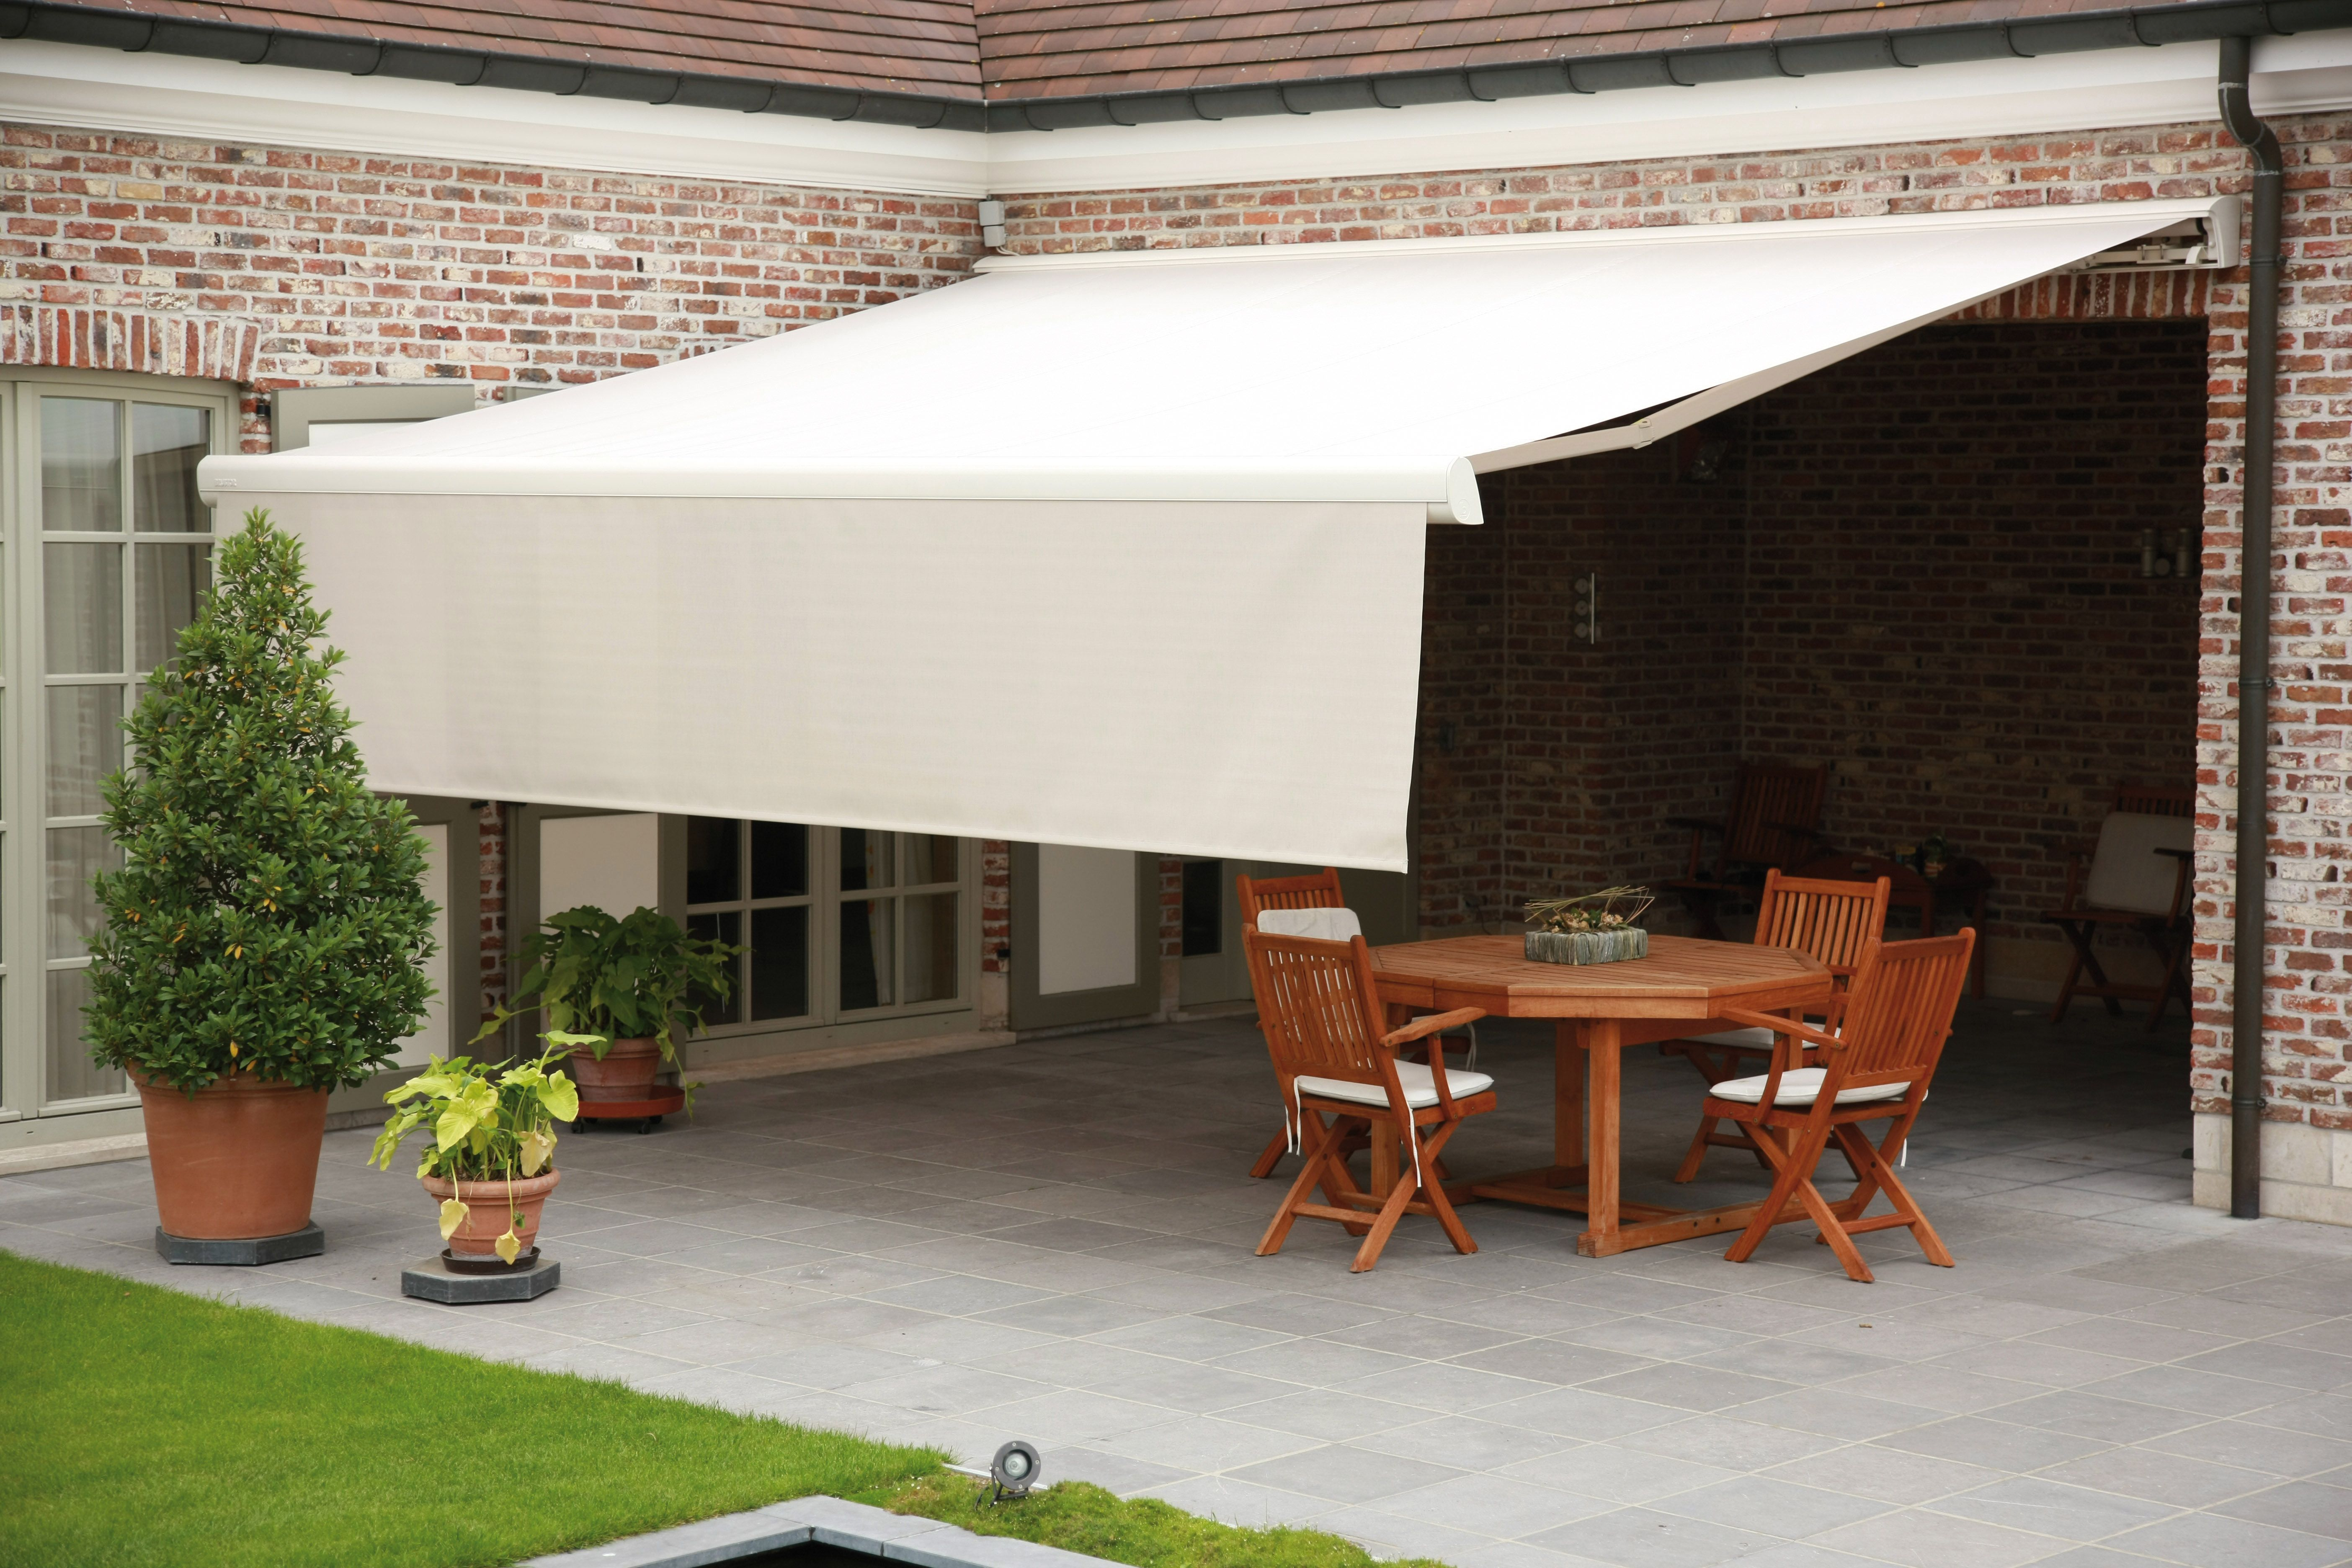 Garden Awning With Valance In 2020 House Awnings Garden Awning Patio Shade